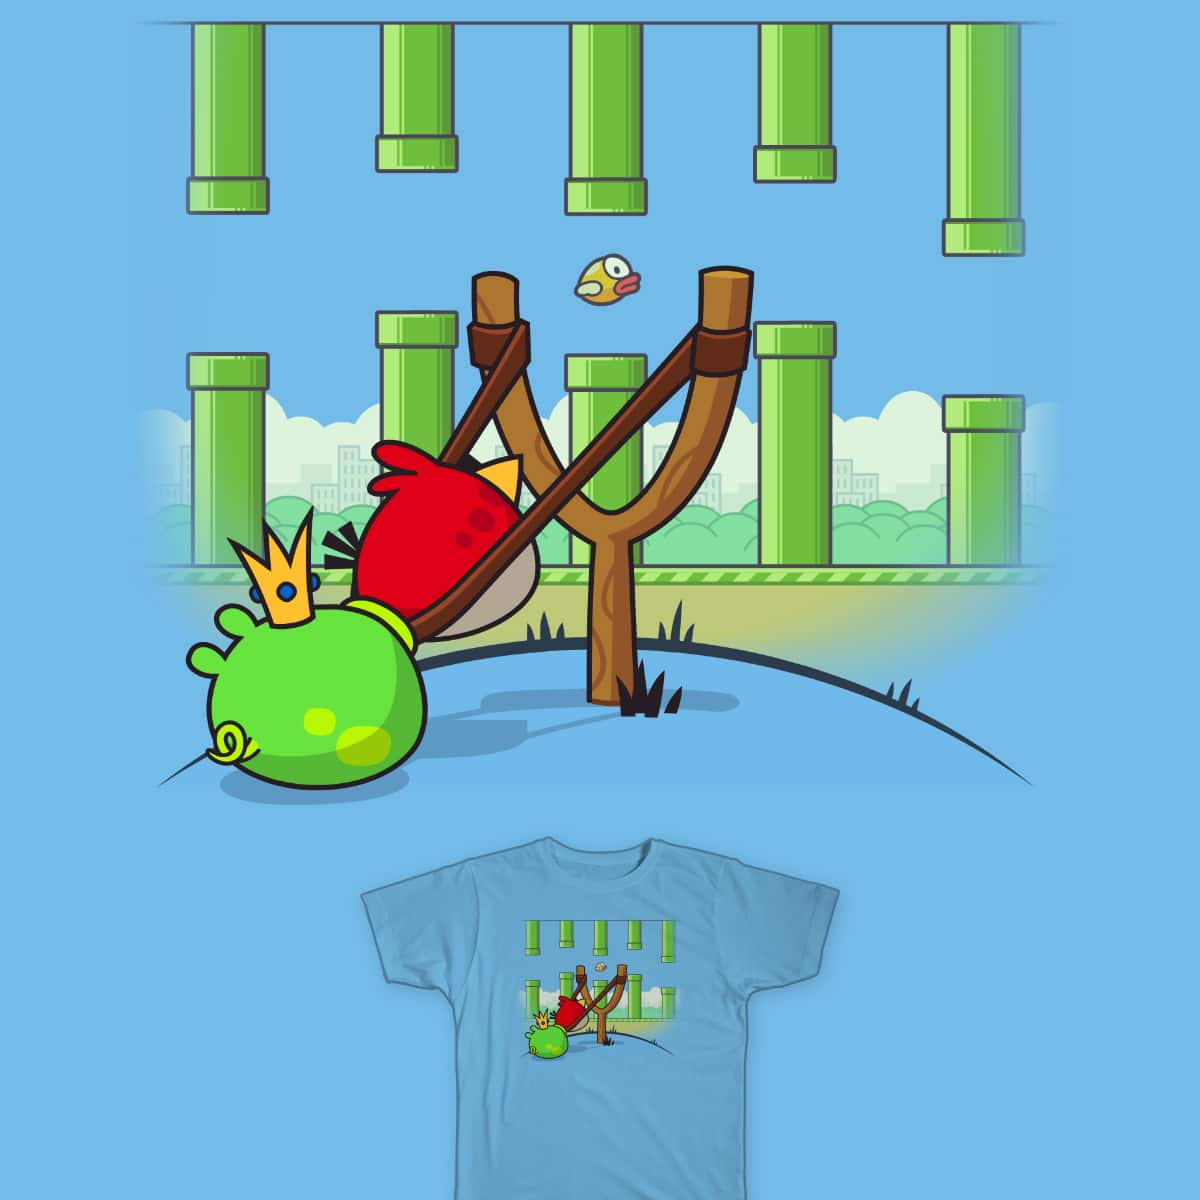 Team Work by FRICKINAWESOME and ALEJANDR0ID on Threadless